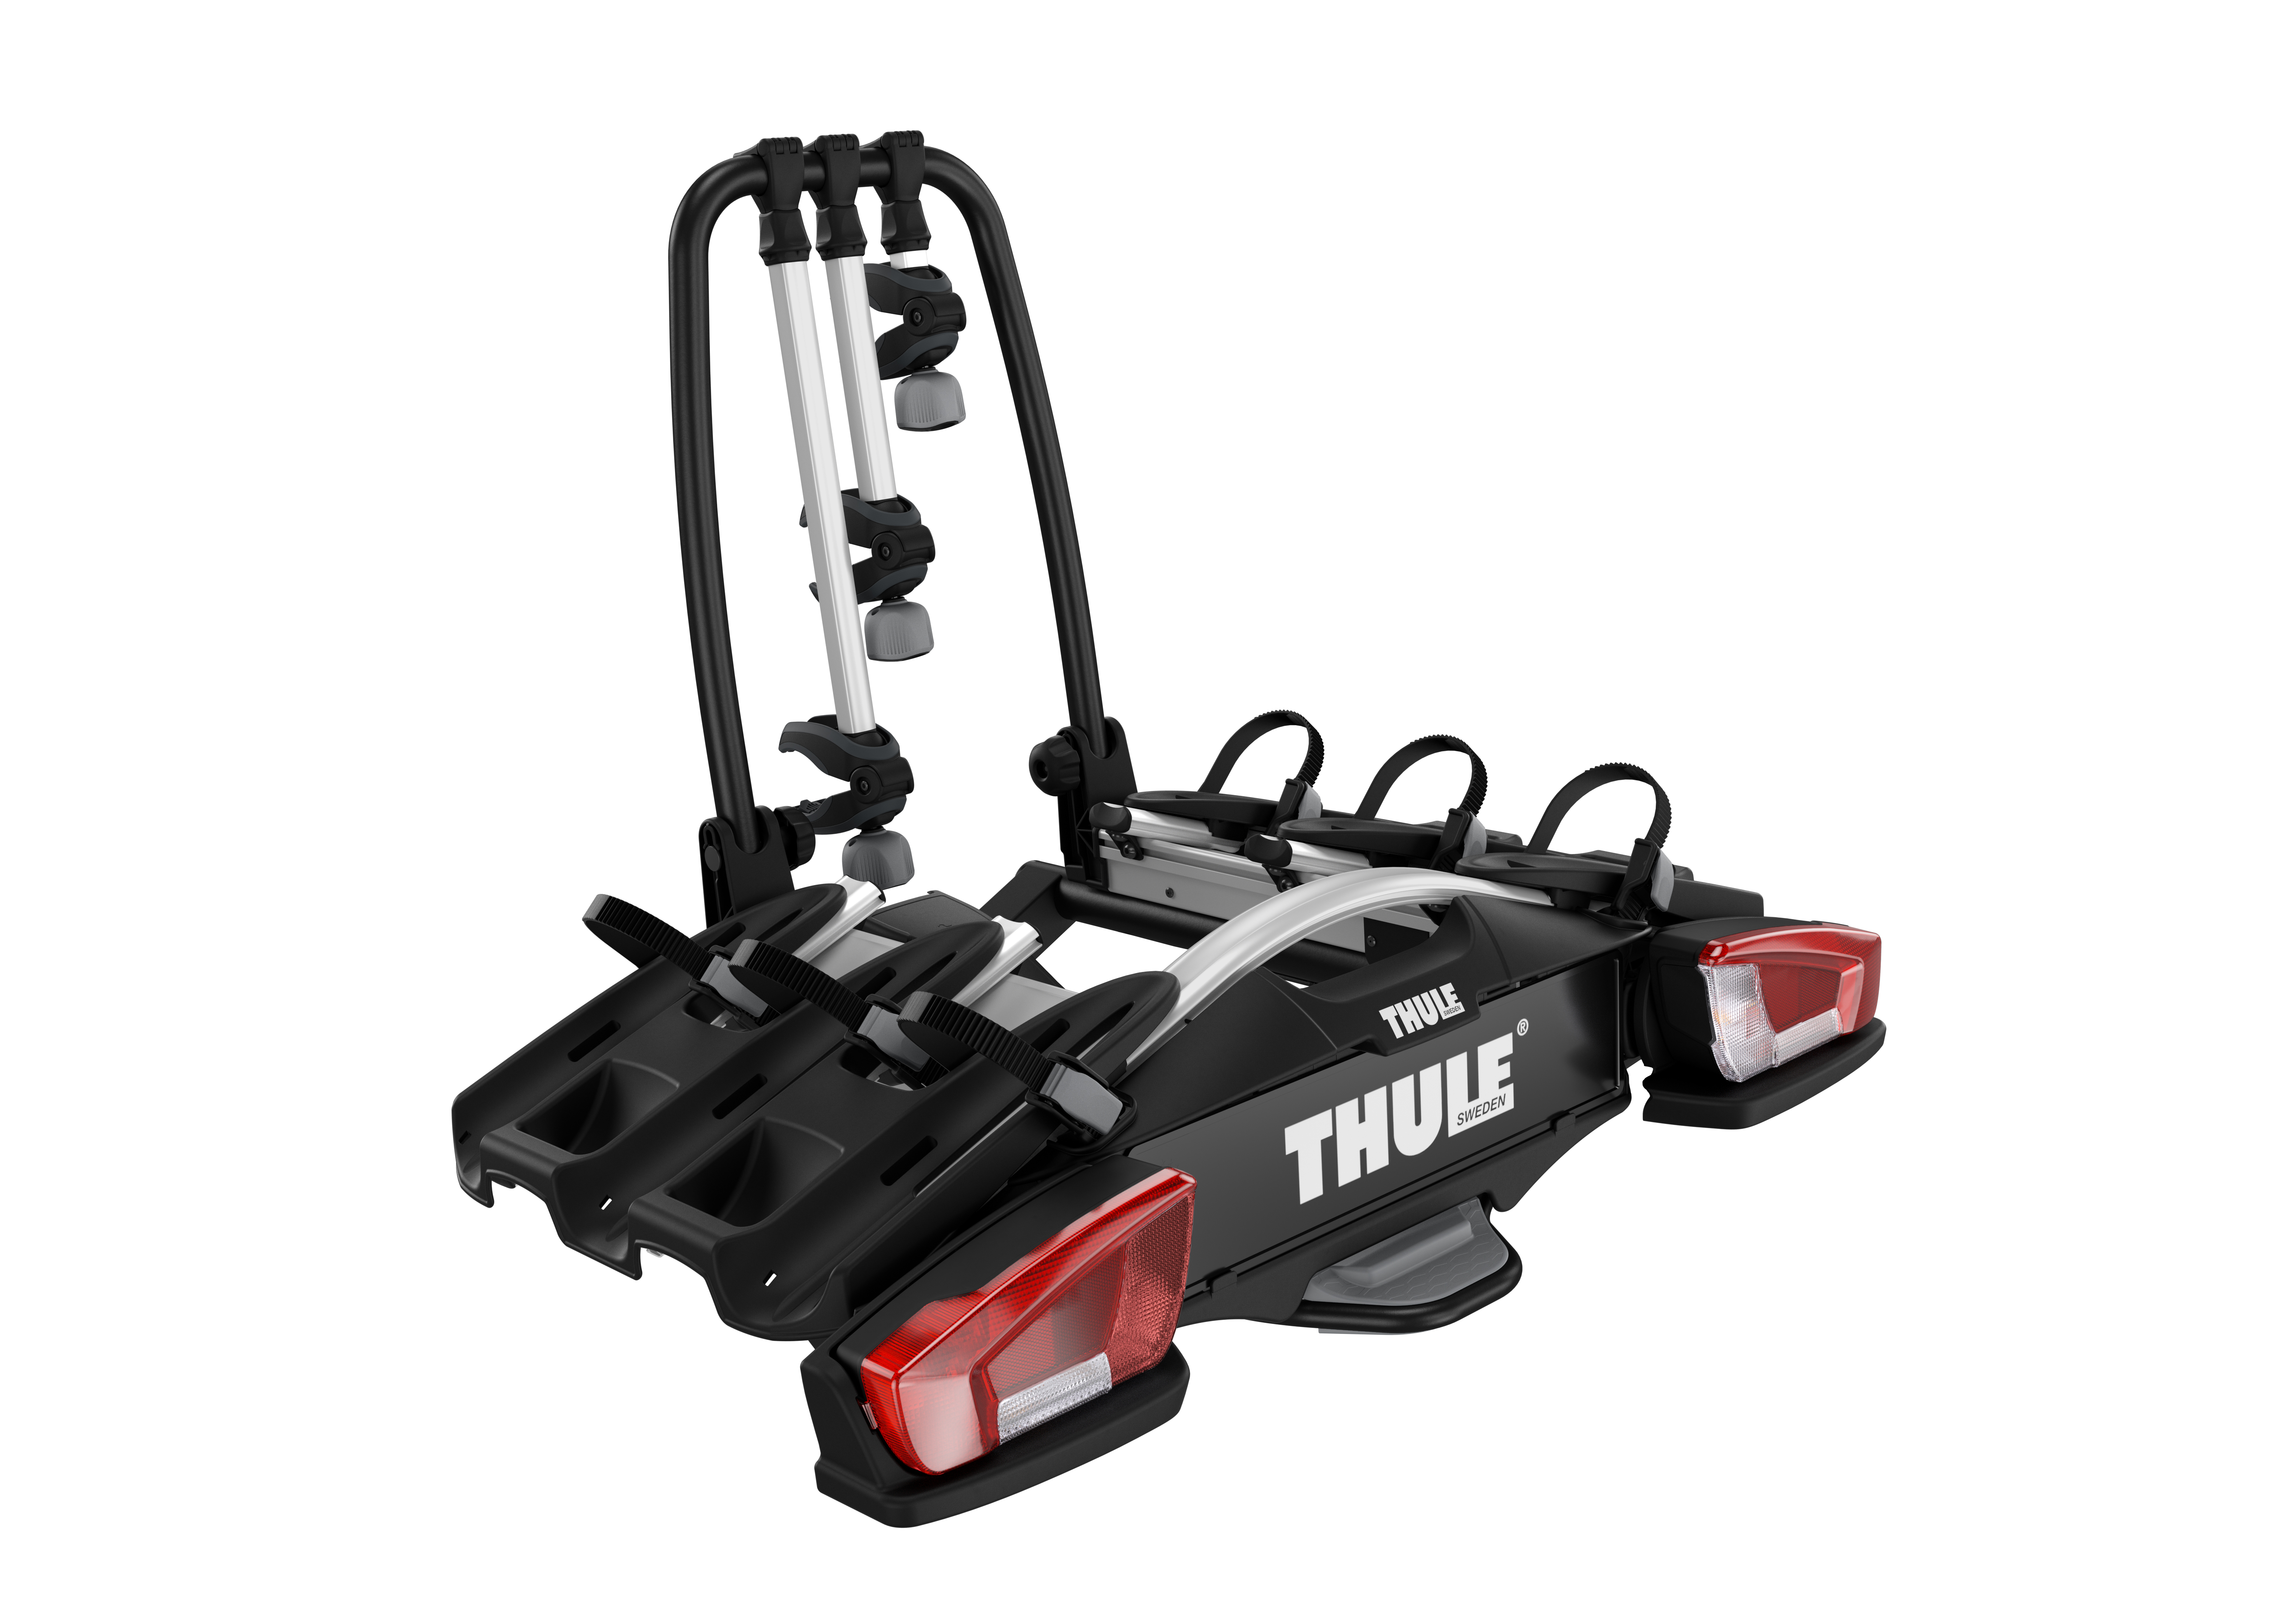 thule velocompact 927 towbar bike carrier for 3 4 bikes carbox. Black Bedroom Furniture Sets. Home Design Ideas